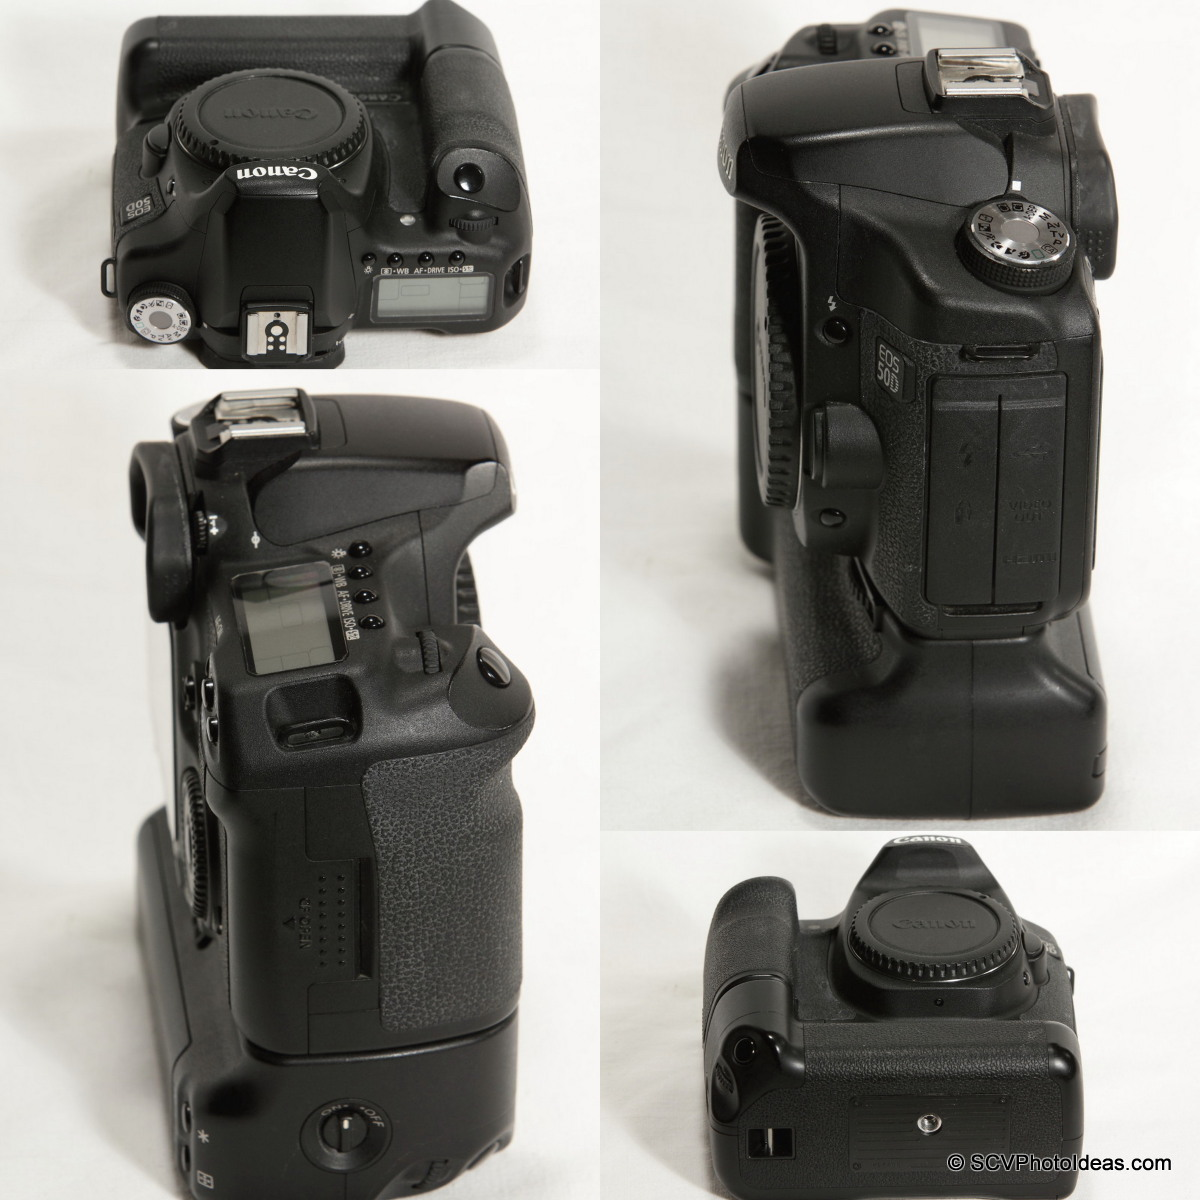 Canon EOS 50D Digital Camera with BG-EN2 battery grip overview